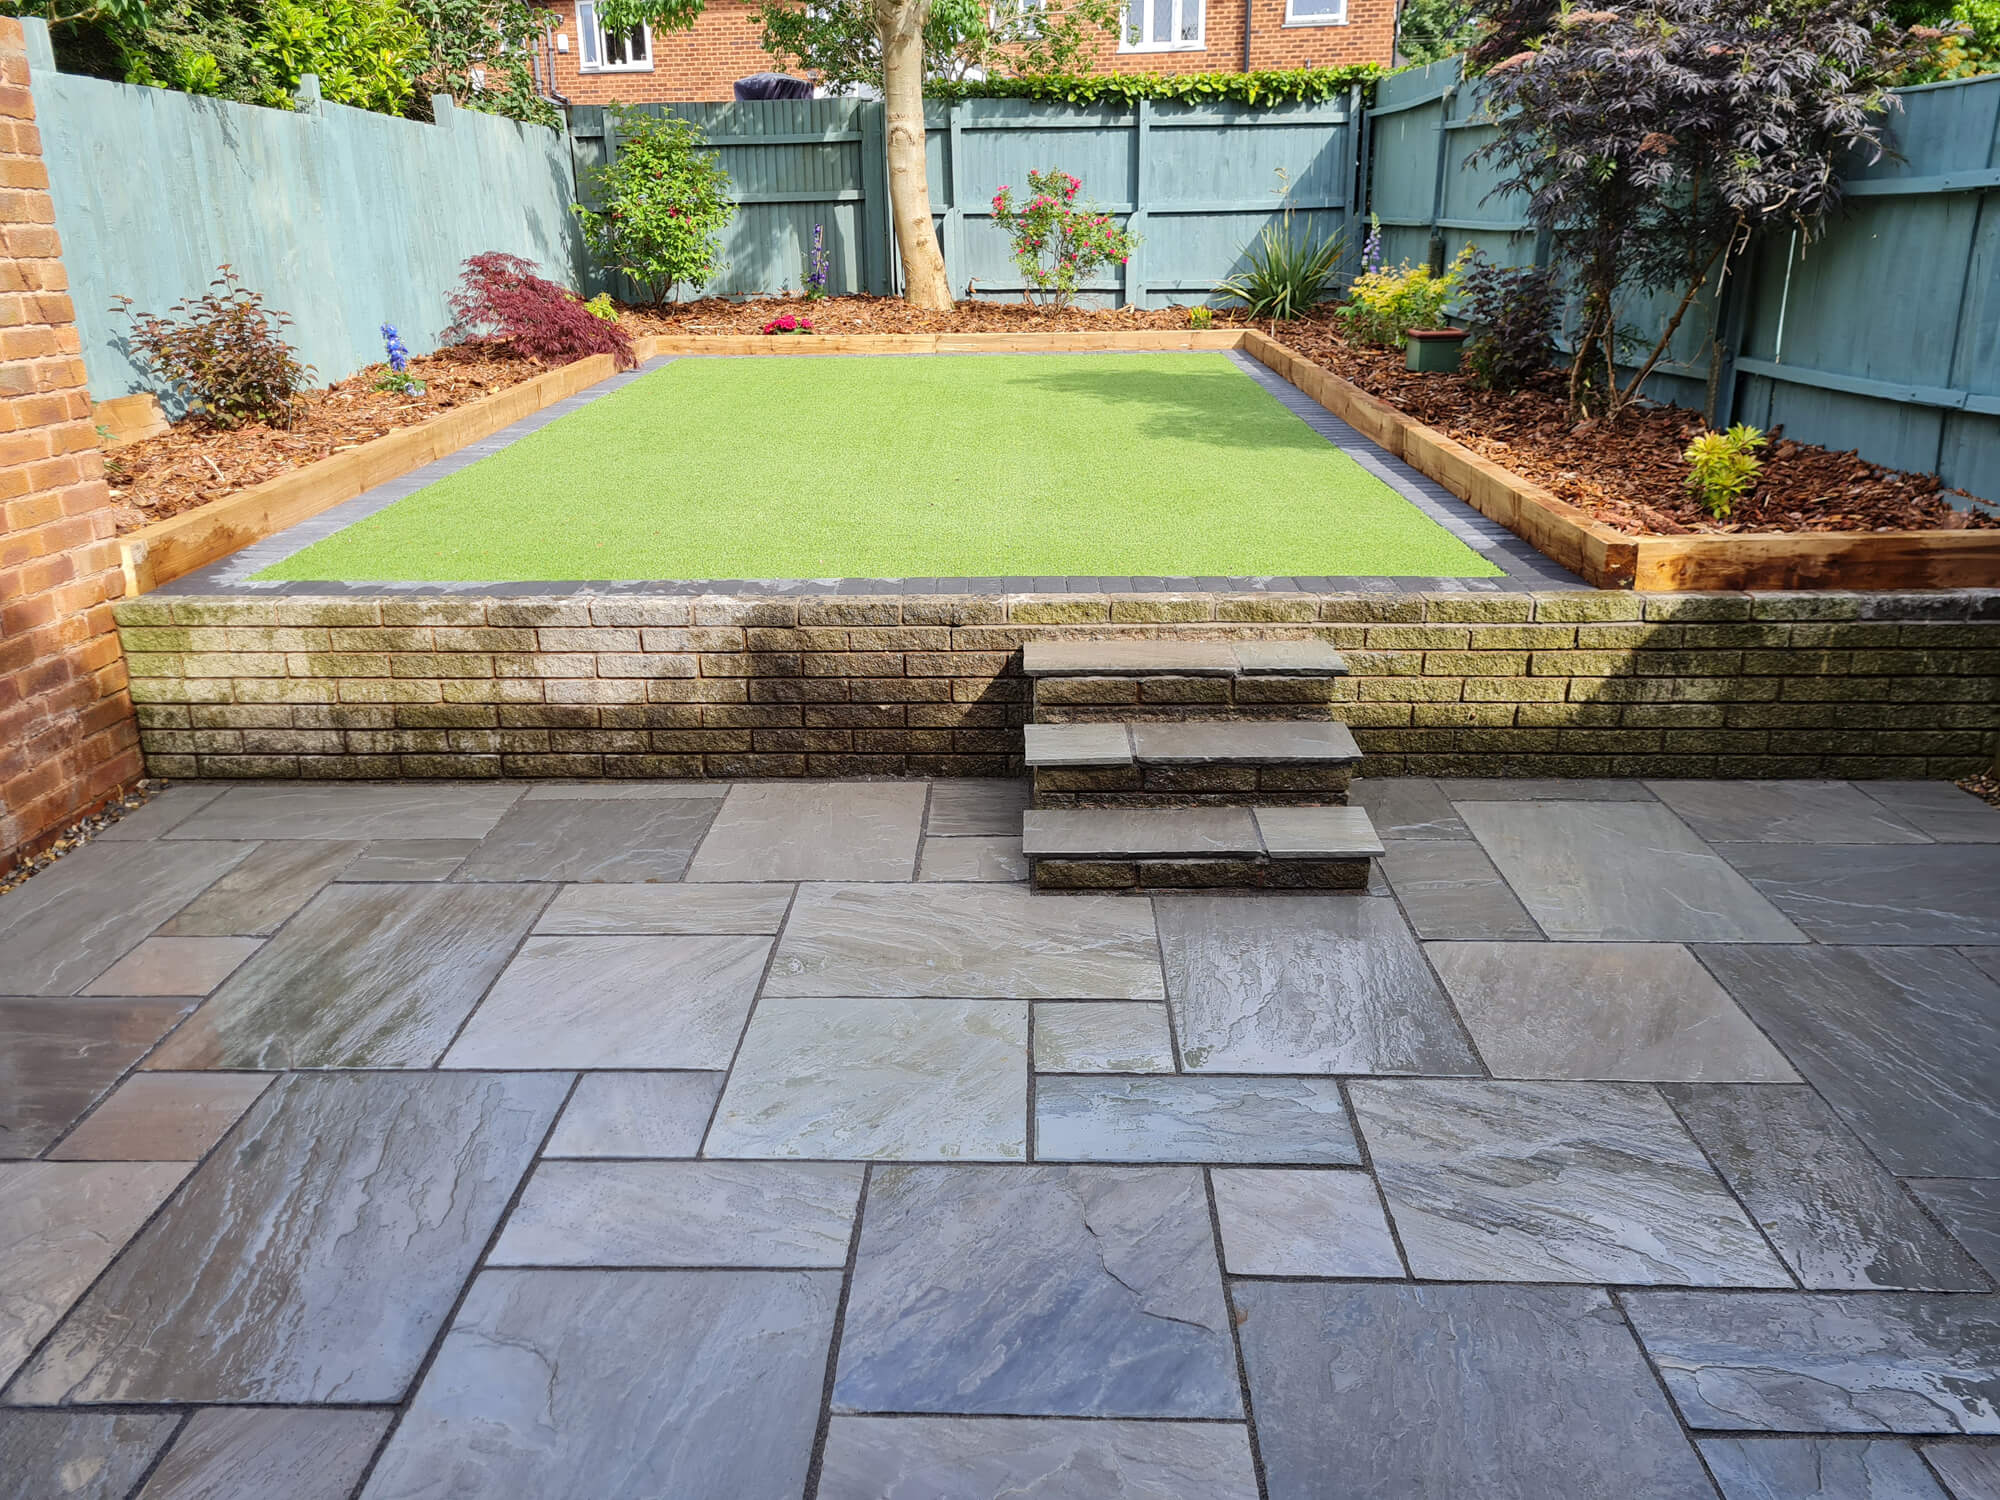 JD Landscapes Garden and Patio Natural Stone Patio in Grey with Artificial Grass and Sleeper Borders